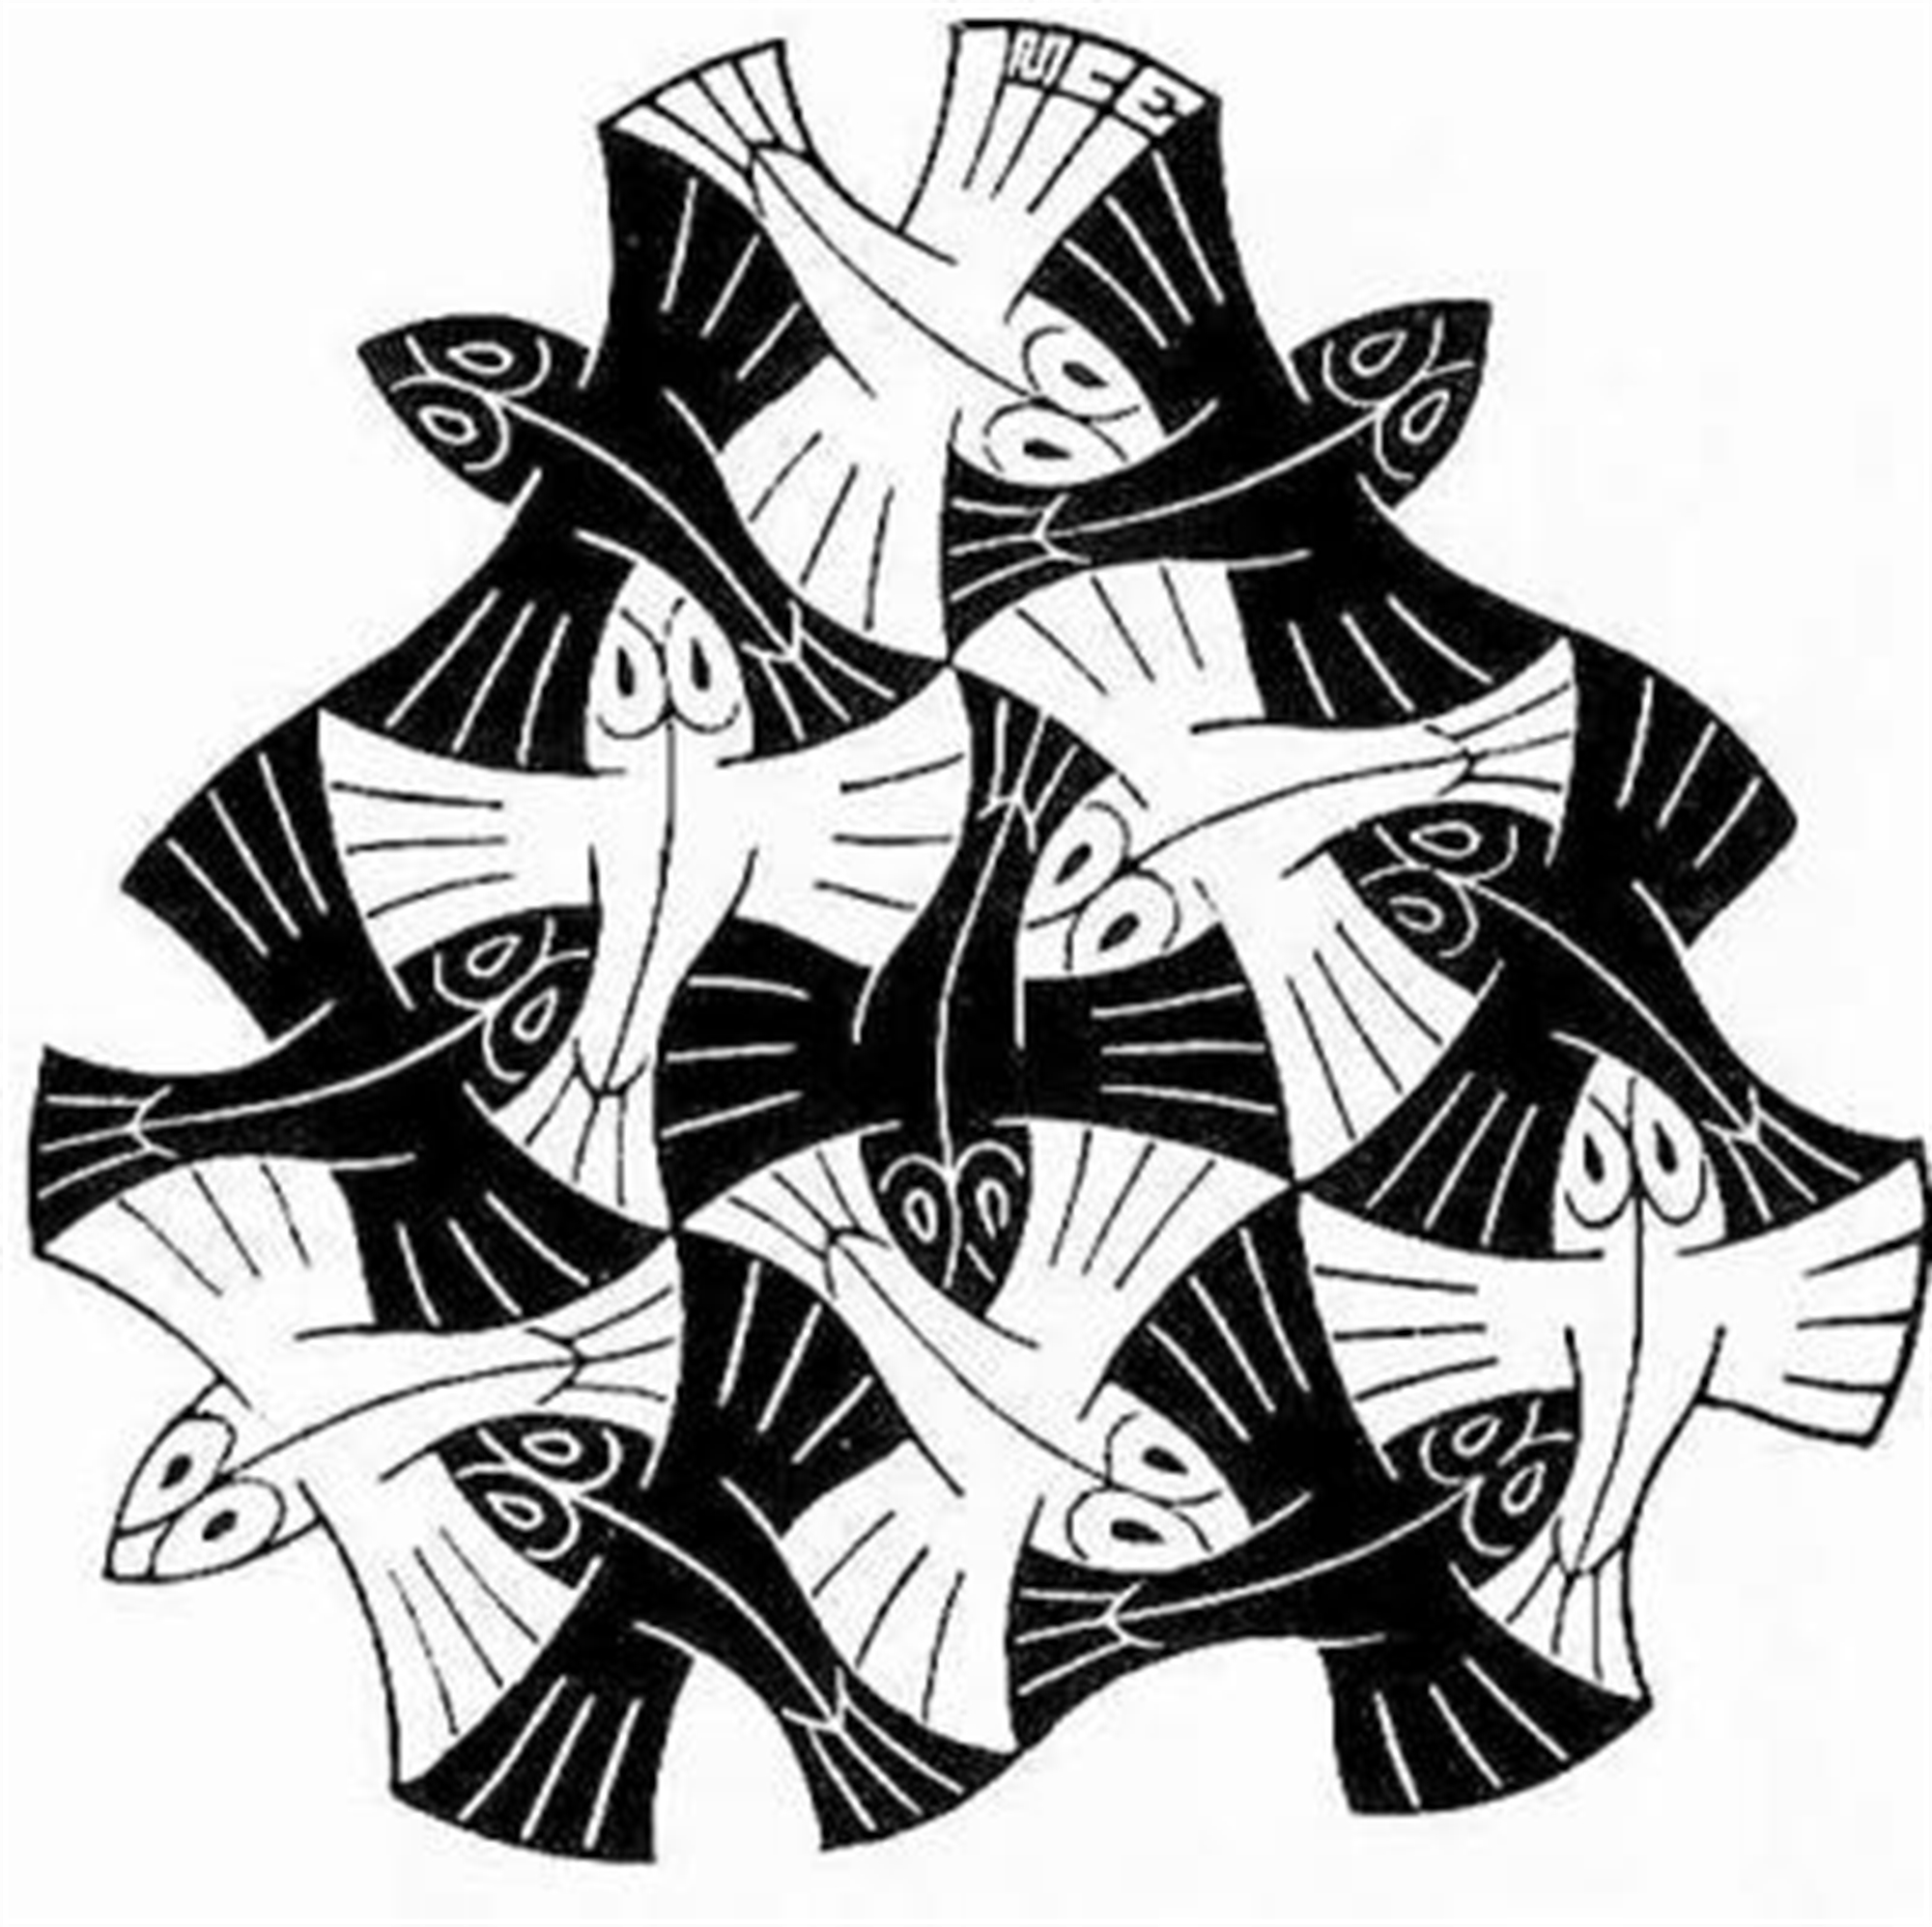 Fish Vignette by M.C. Escher